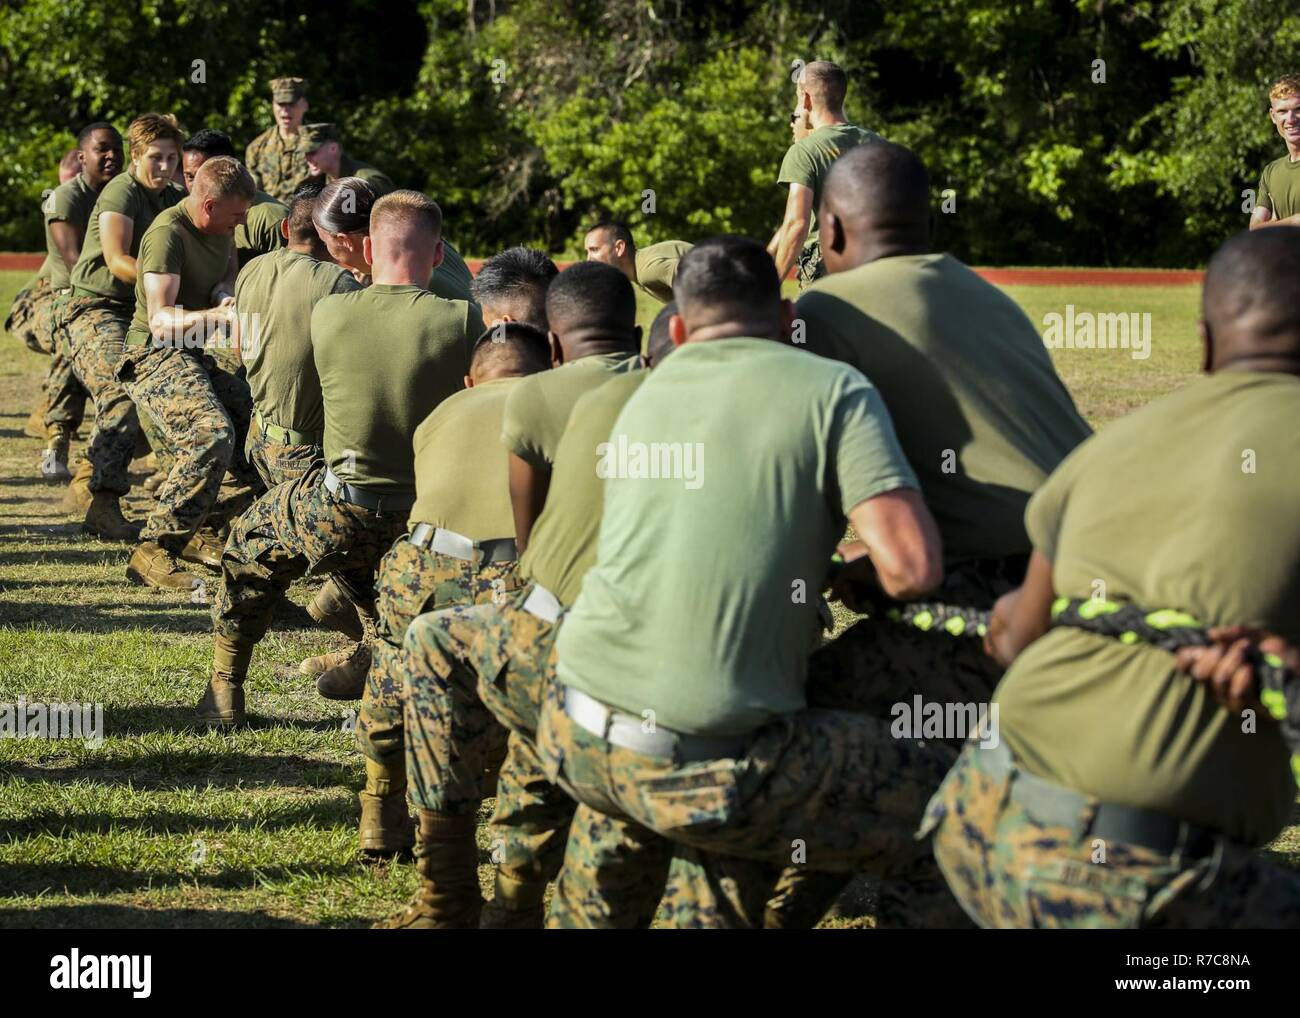 ccbcb412d Marines compete in a tug of war aboard Marine Corps Air Station Beaufort,  May 5